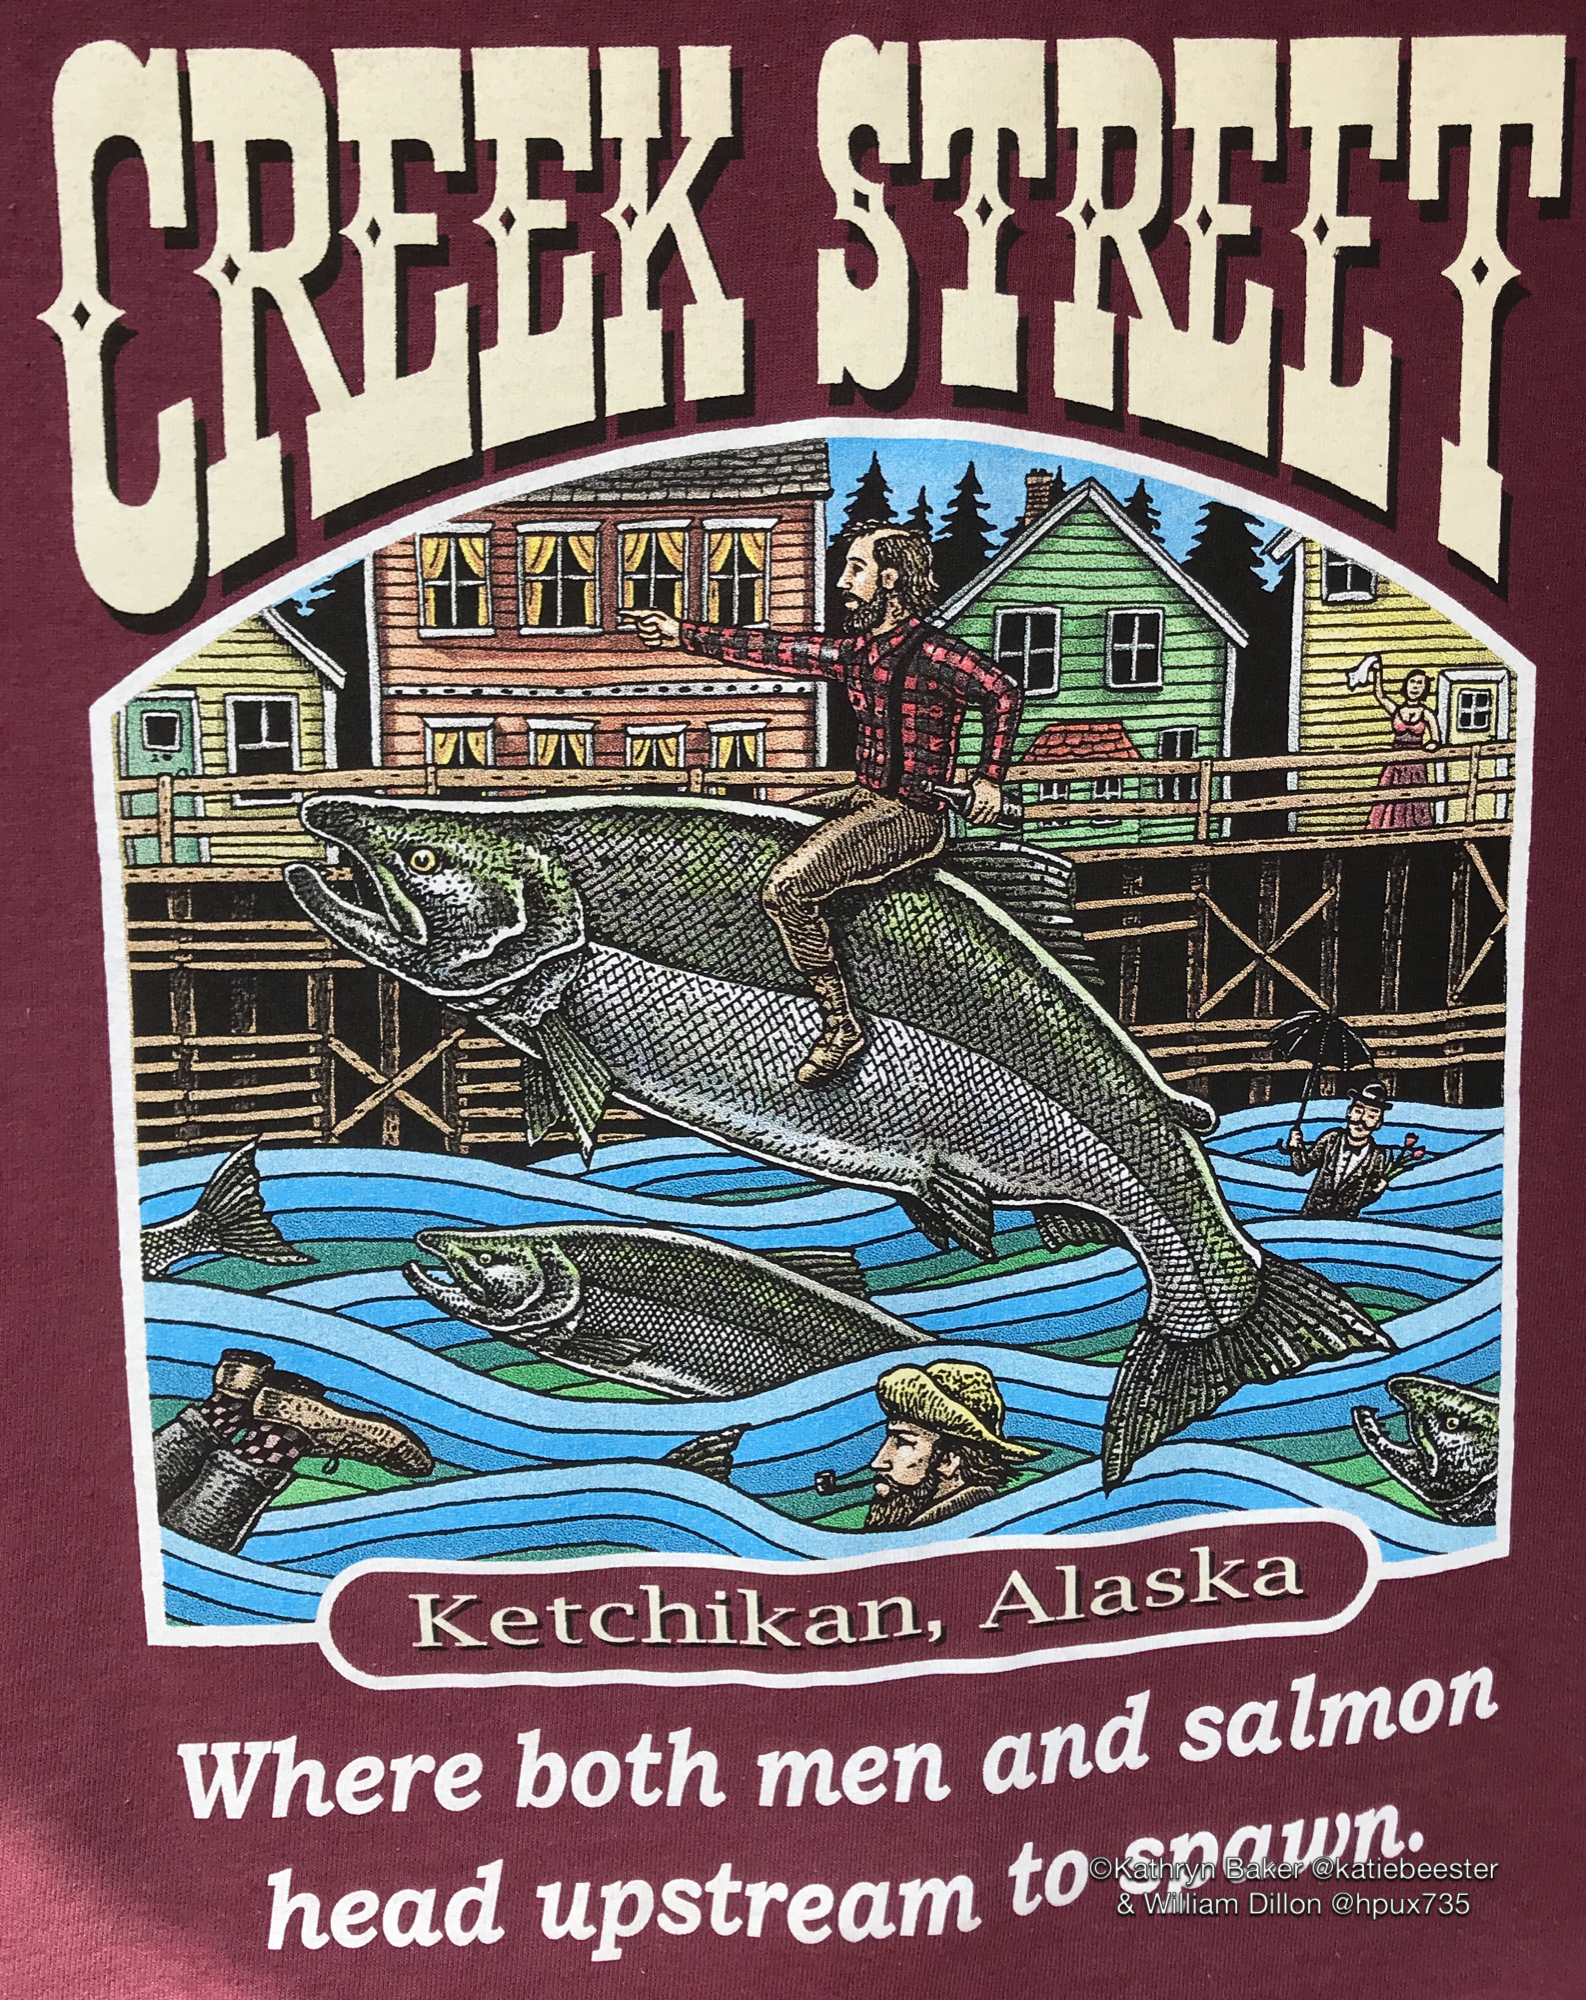 Creek Street shirt